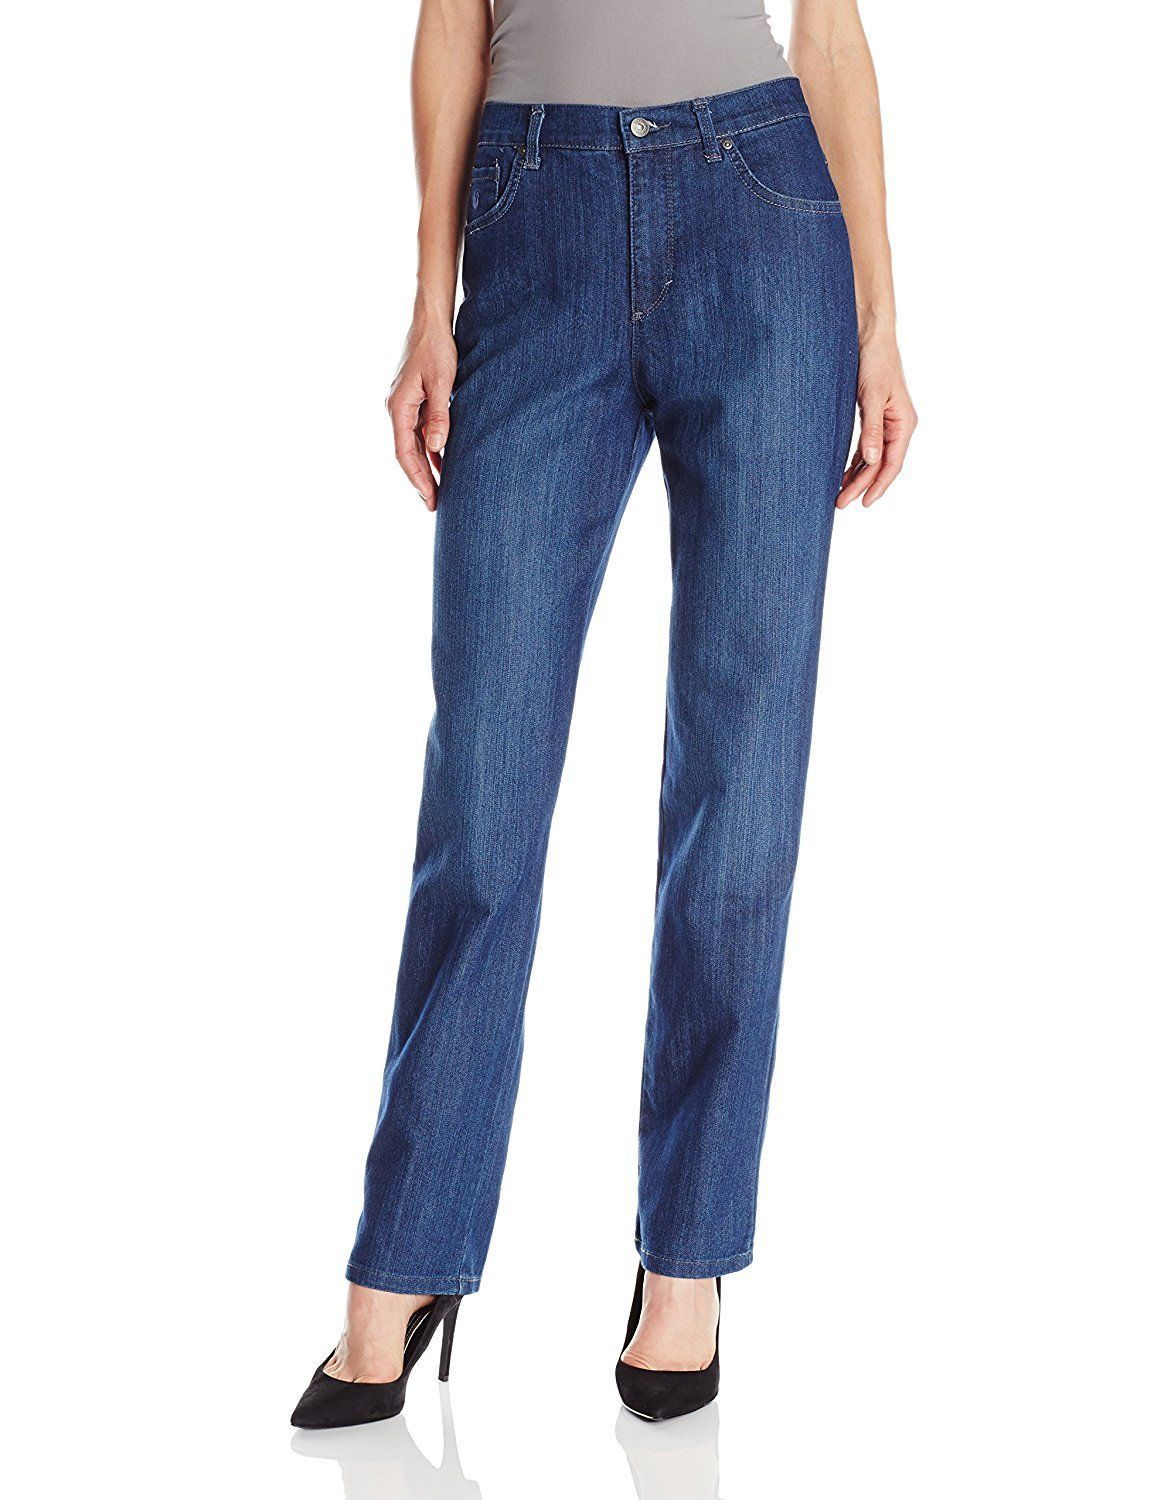 826c632715f1e  10.99 - Gloria Vanderbilt Amanda Womens Plus Size Tapered Leg Phoenix Blue Stretch  Jeans  ebay